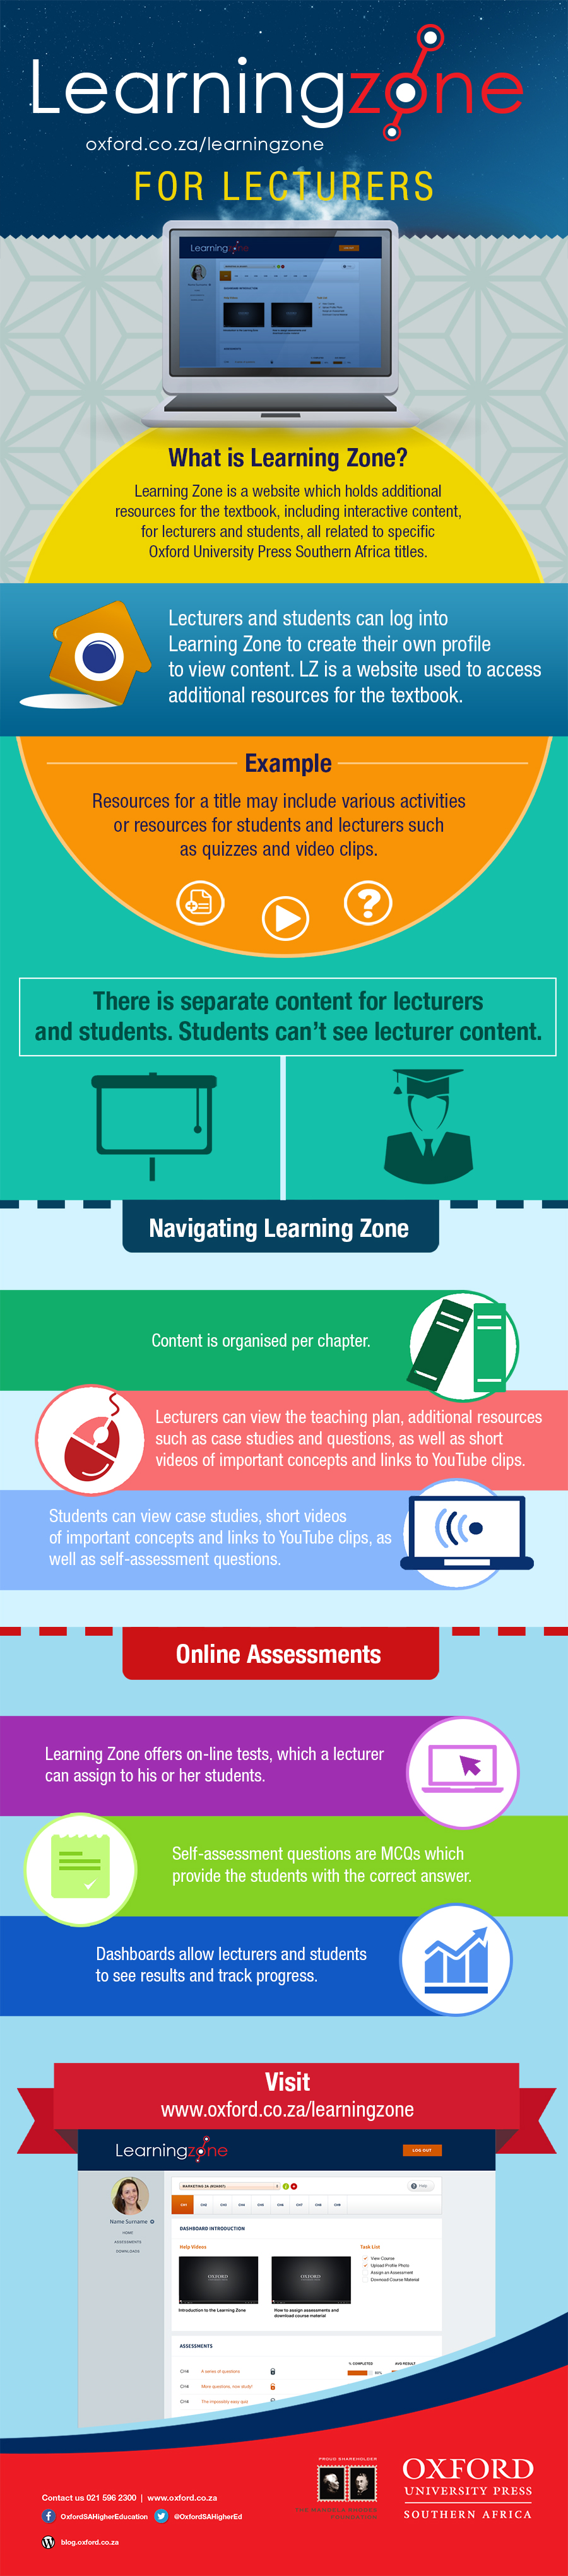 Learning Zone for Lecturers Studio